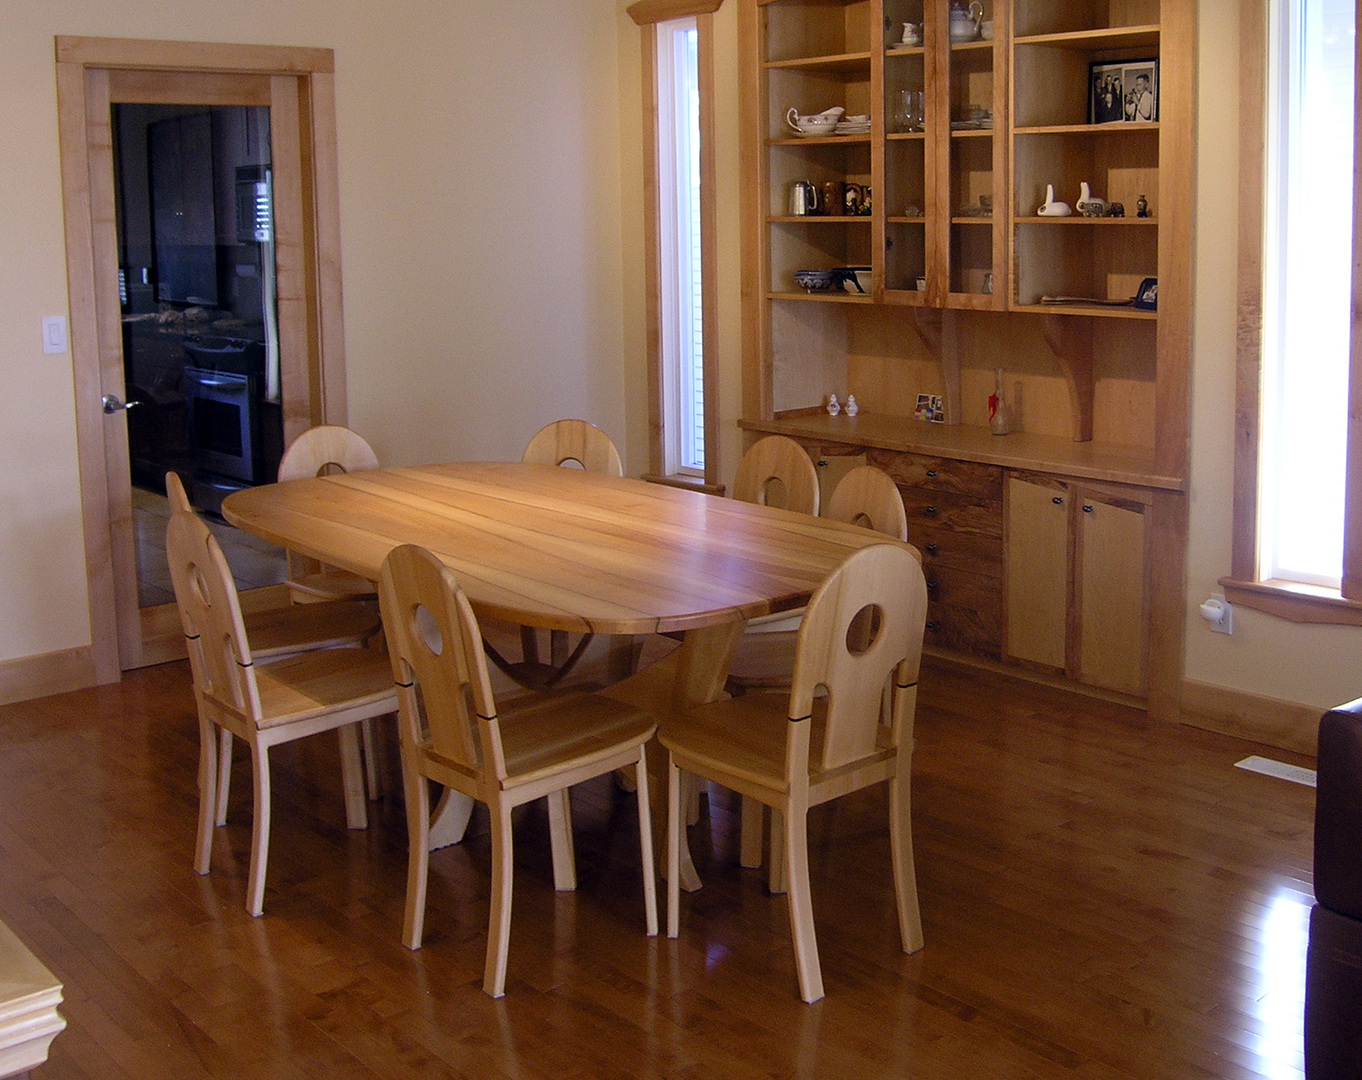 Dining room furniture vancouver bc property details for Furniture vancouver